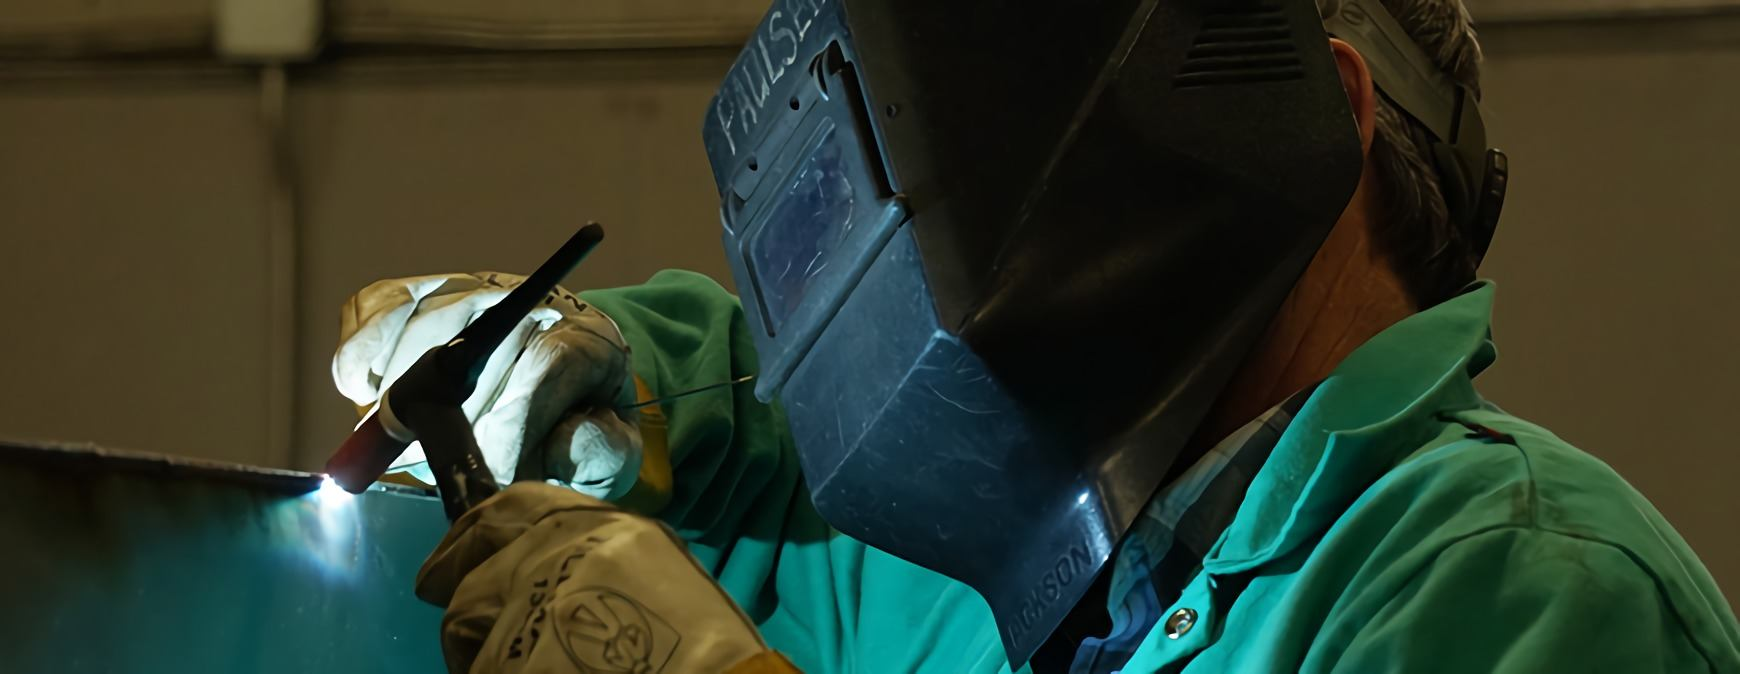 welder using torch